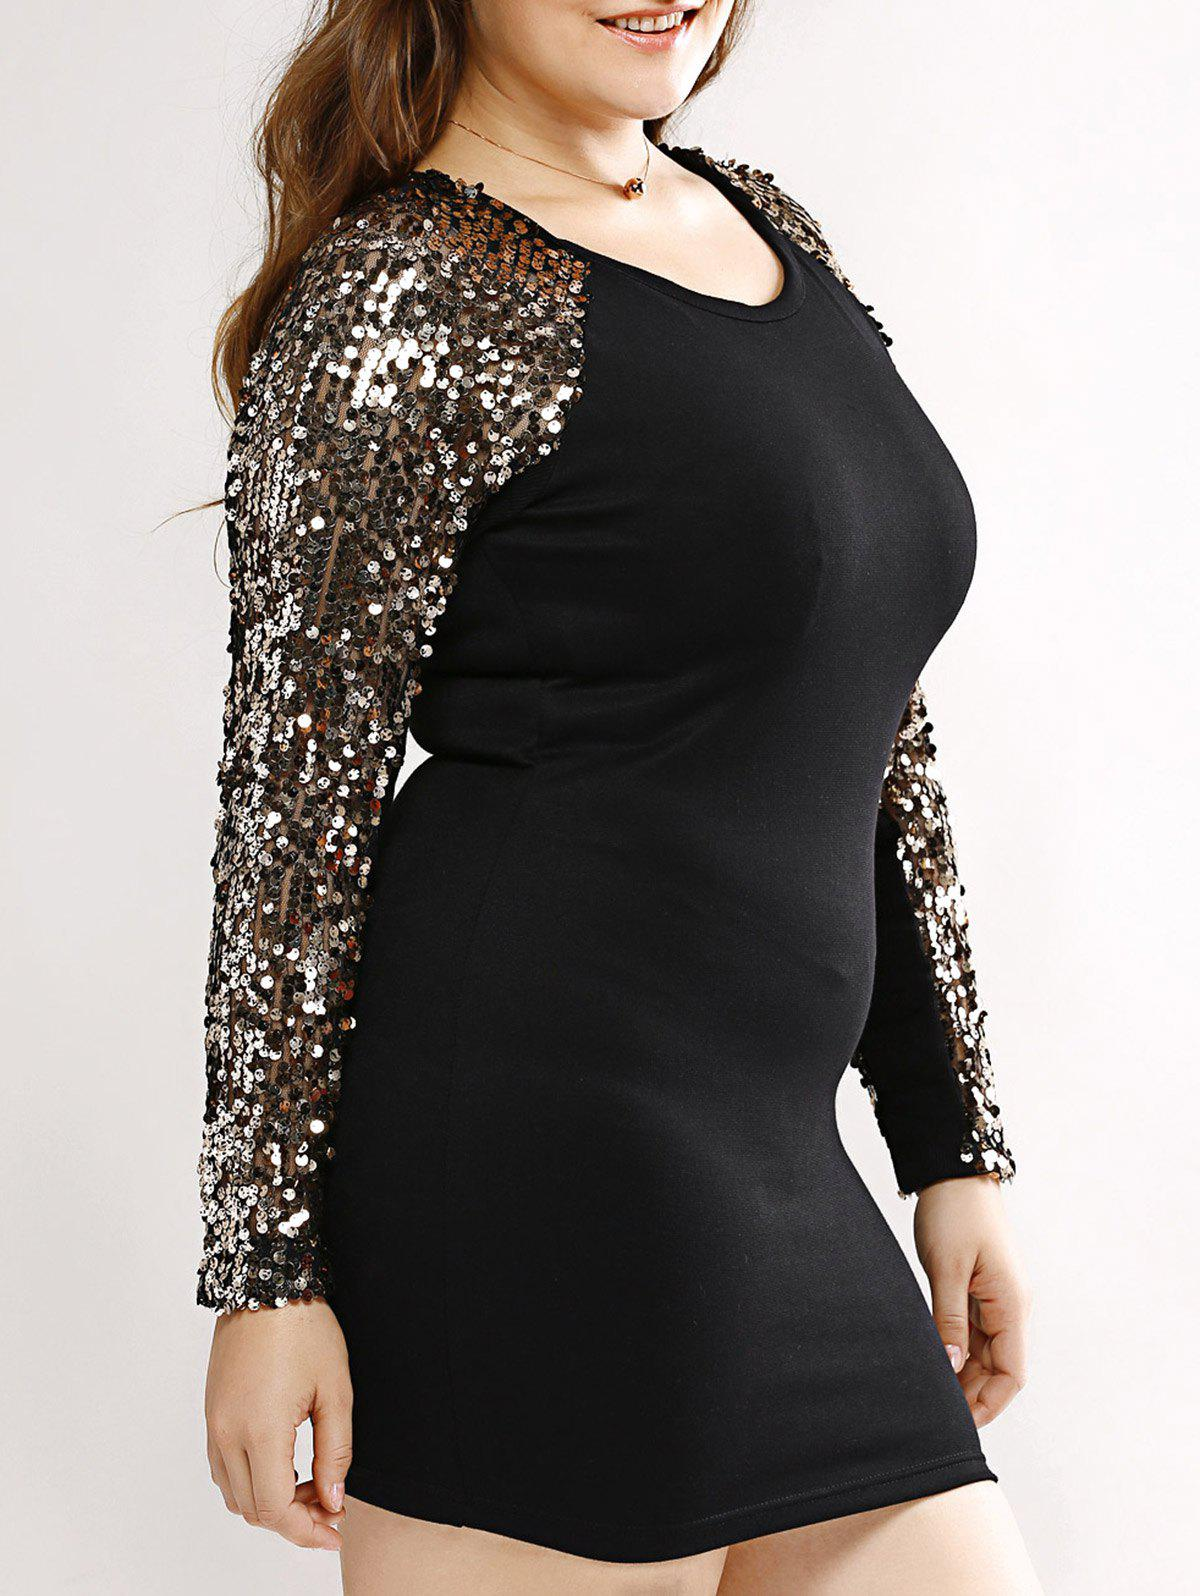 Plus Size Bodycon Long Sleeve Sequin T Shirt Dress, Black ...